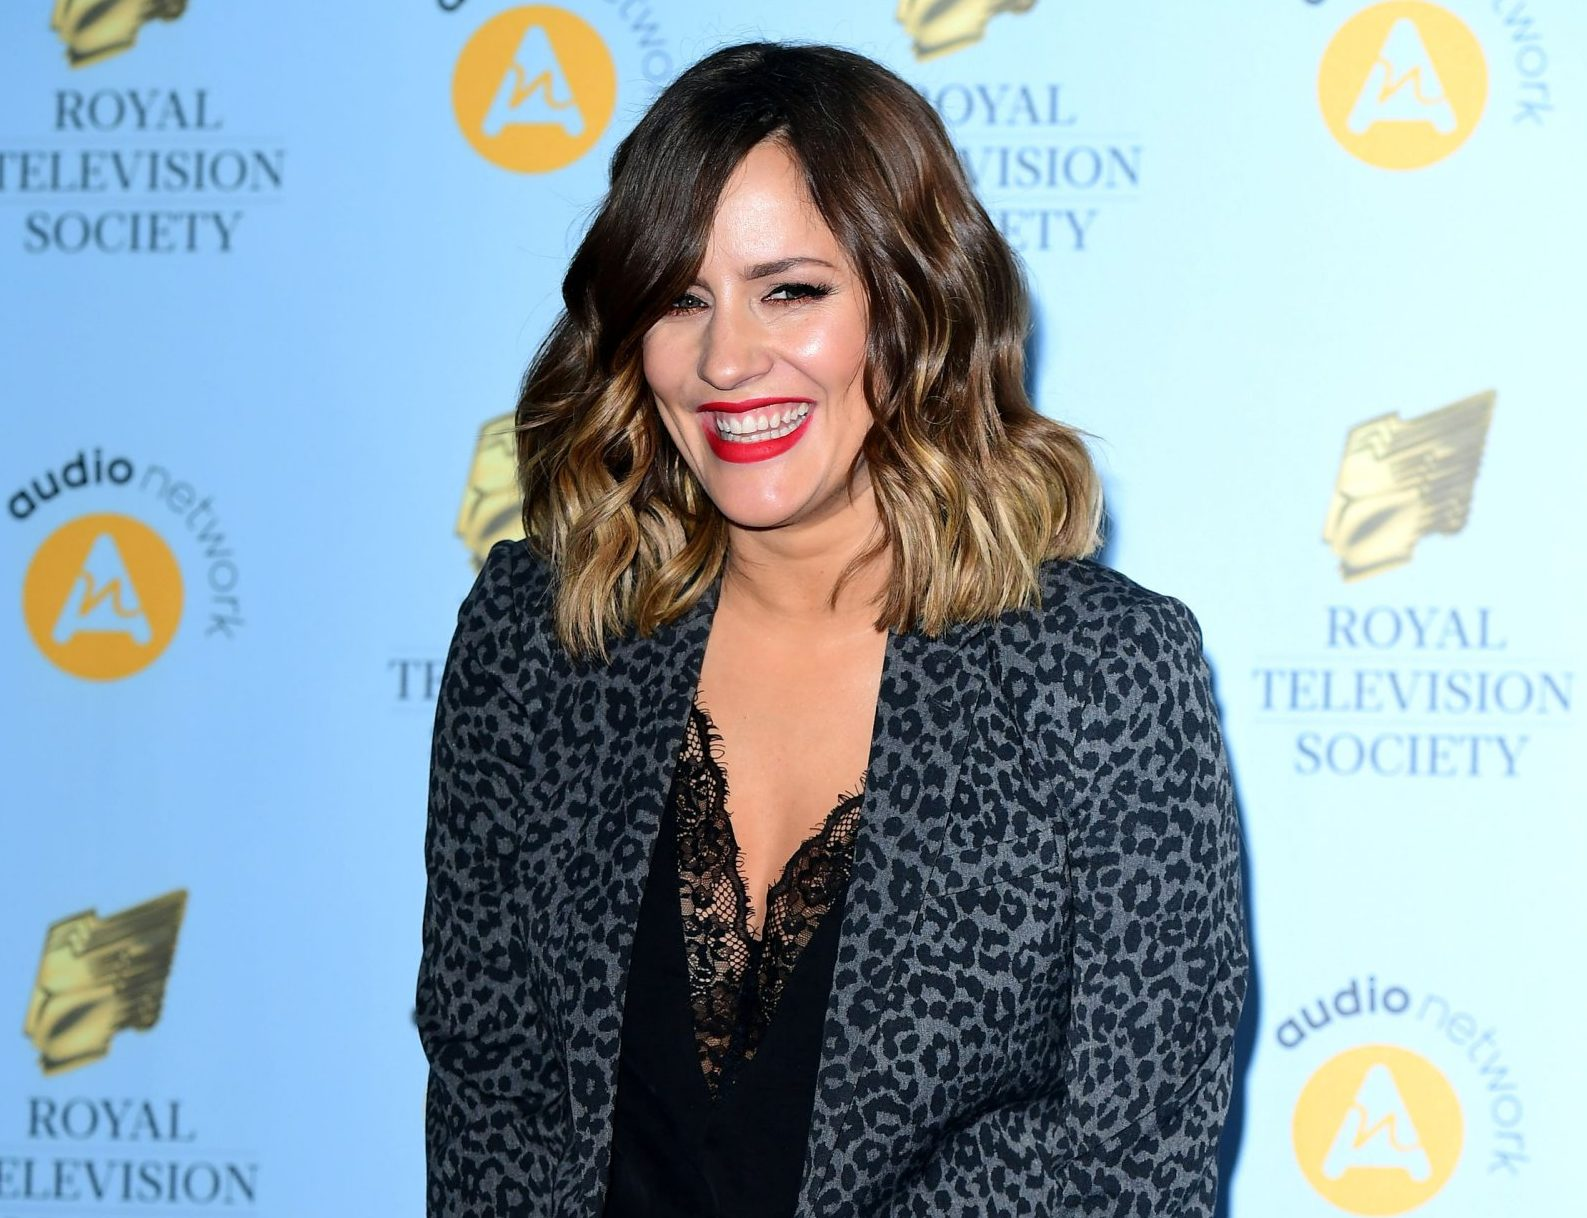 Caroline Flack attending the Royal Television Society Programme Awards at Grosvenor House Hotel, Park Lane, London. PRESS ASSOCIATION Photo. Picture date: Tuesday 20th March, 2018. Photo credit should read: Ian West/PA Wire